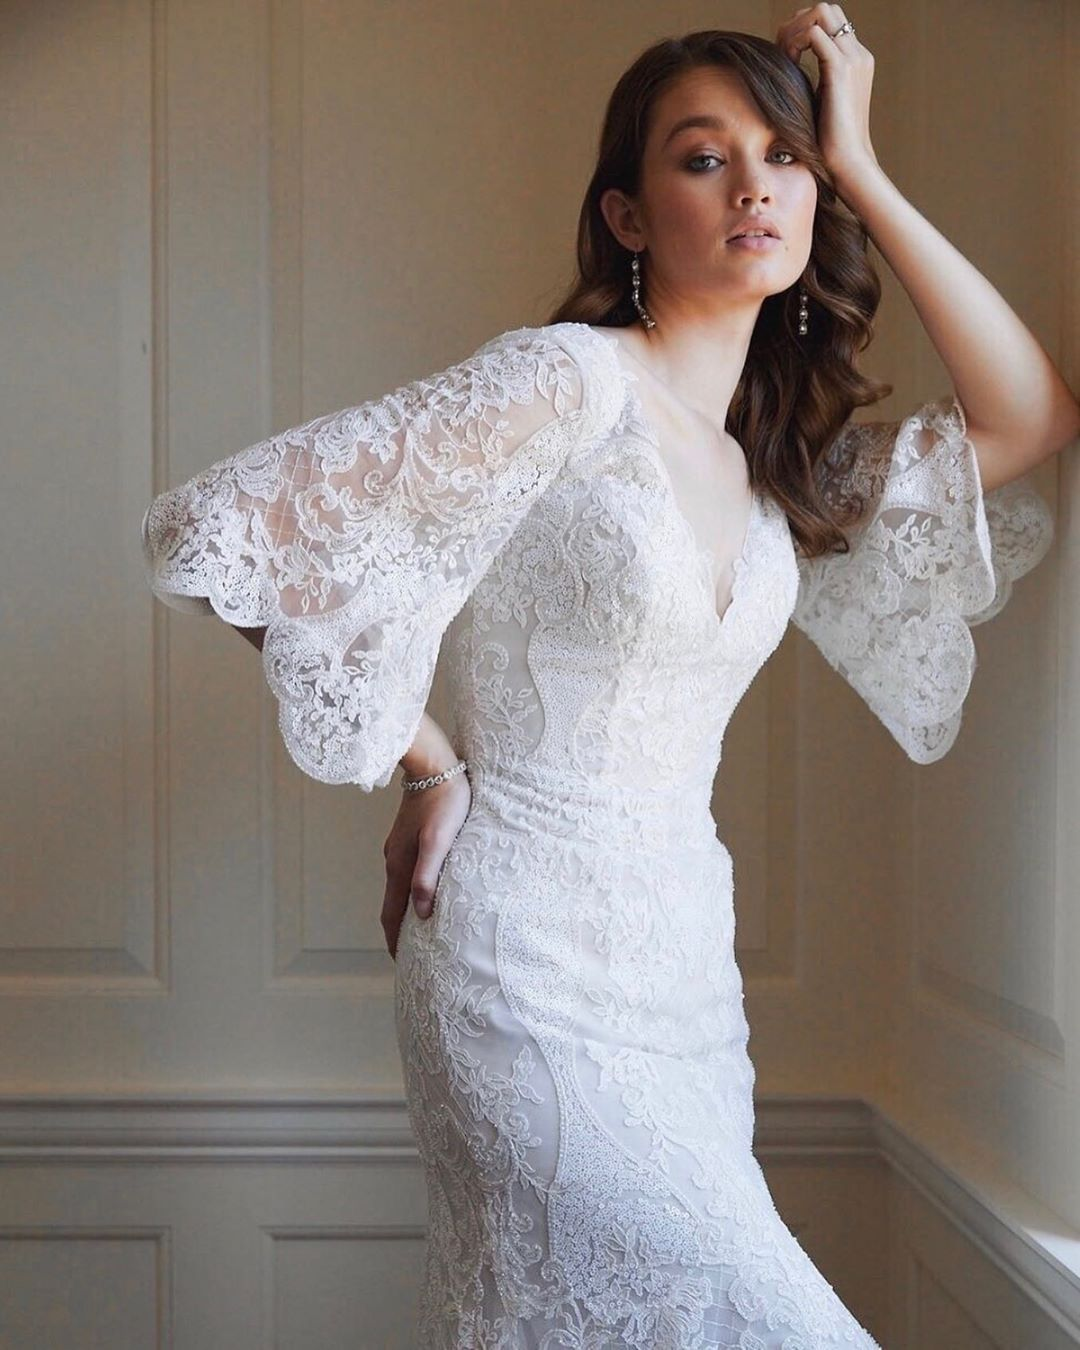 Lace Wedding Gown With Bell Sleeves Wedding Gowns Lace Bridal Style Wedding Dresses [ 1350 x 1080 Pixel ]